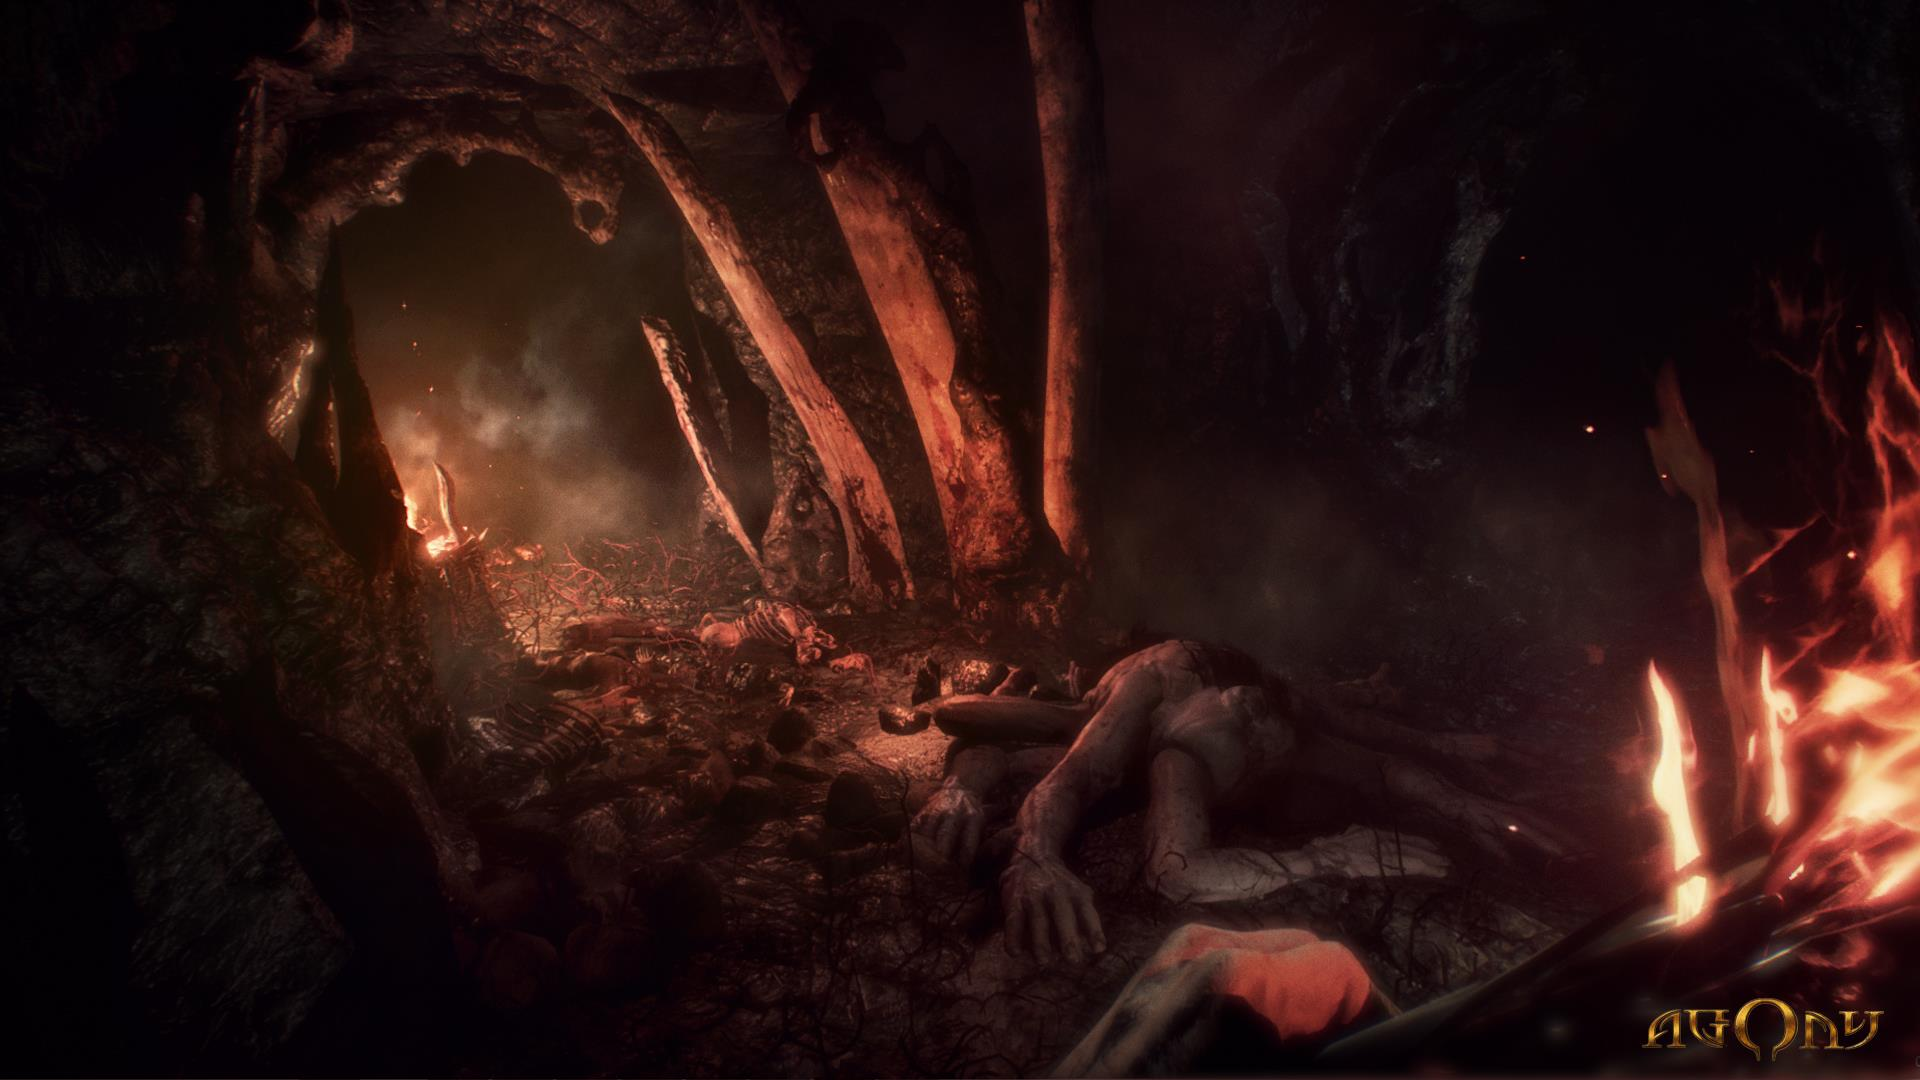 Agony is a first-person survival horror set in hell | VG247